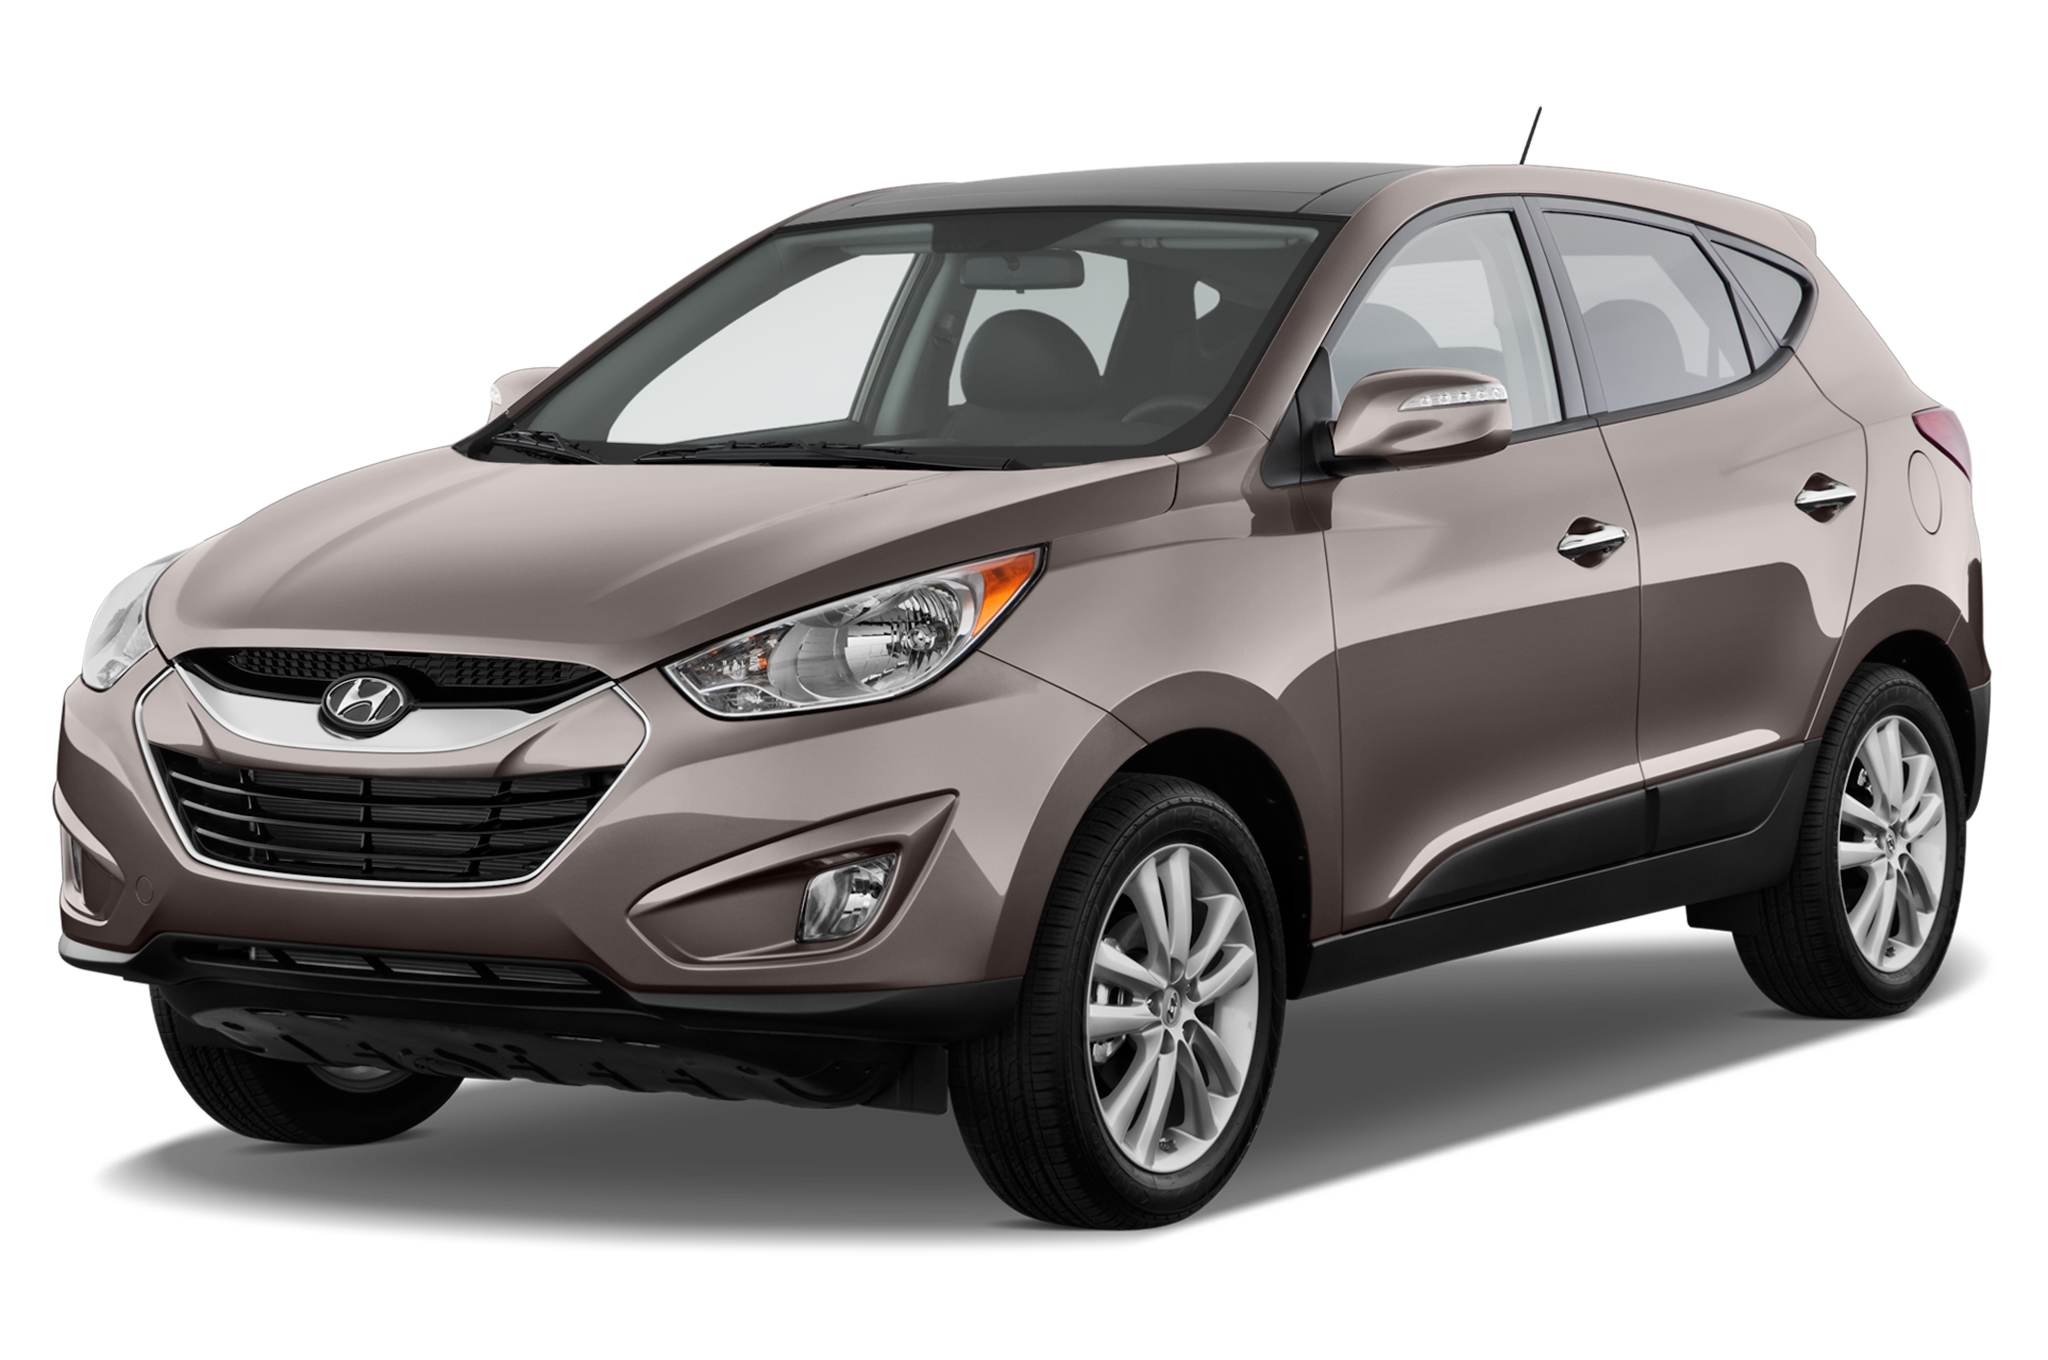 2010 hyundai tucson hyundai crossover suv review. Black Bedroom Furniture Sets. Home Design Ideas